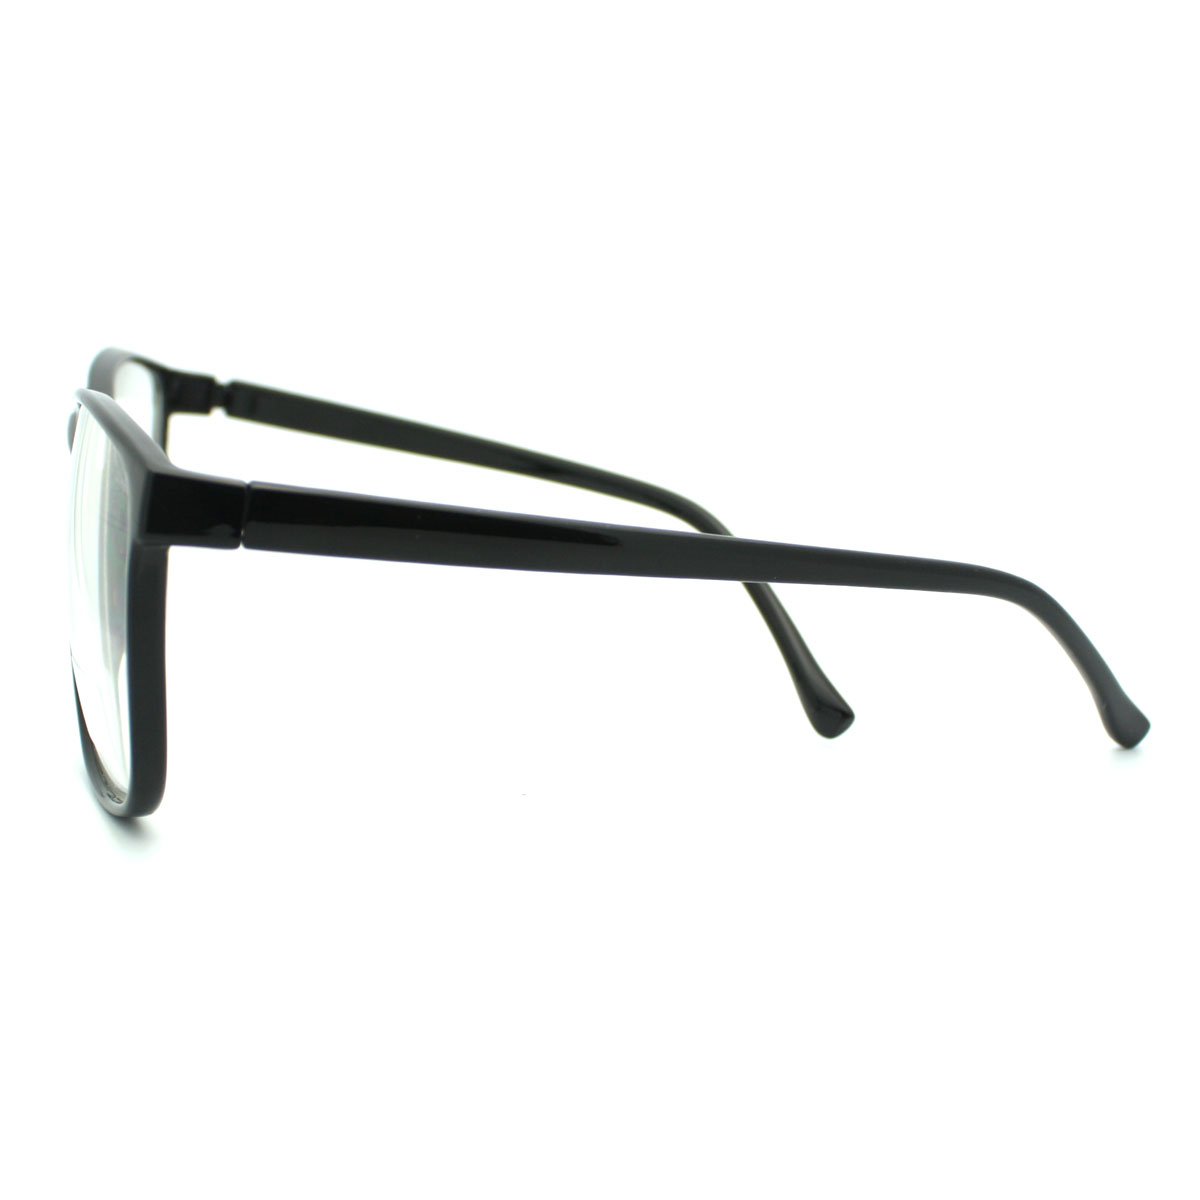 Large Thin Frame Glasses Matte Black : Black Large nerdy Geek Old School Clear Lens Thin Horn Rim ...